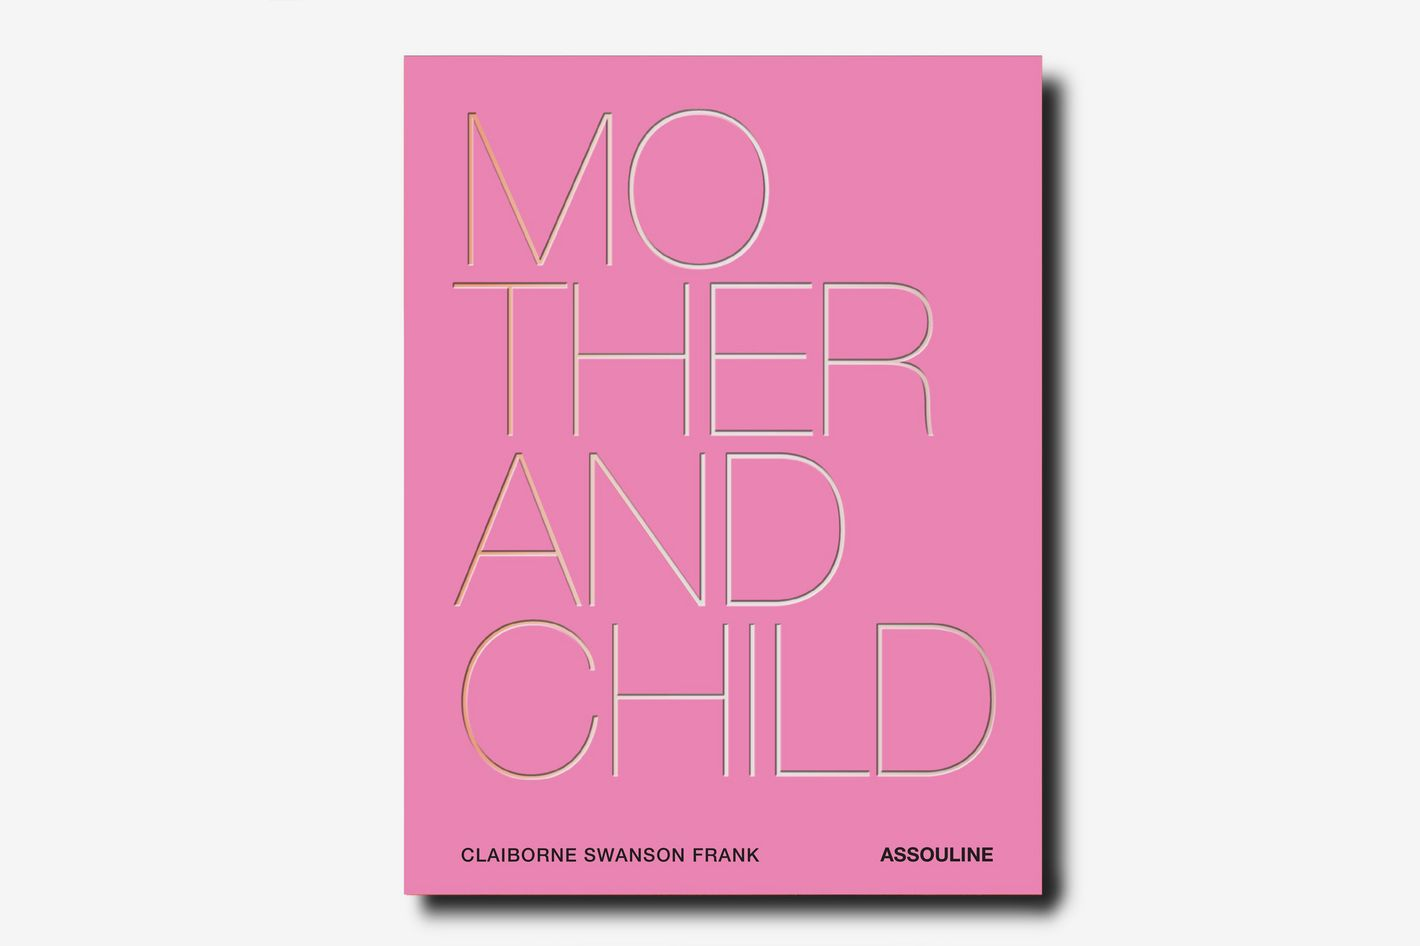 Mother and Child by Claiborne Swanson Frank